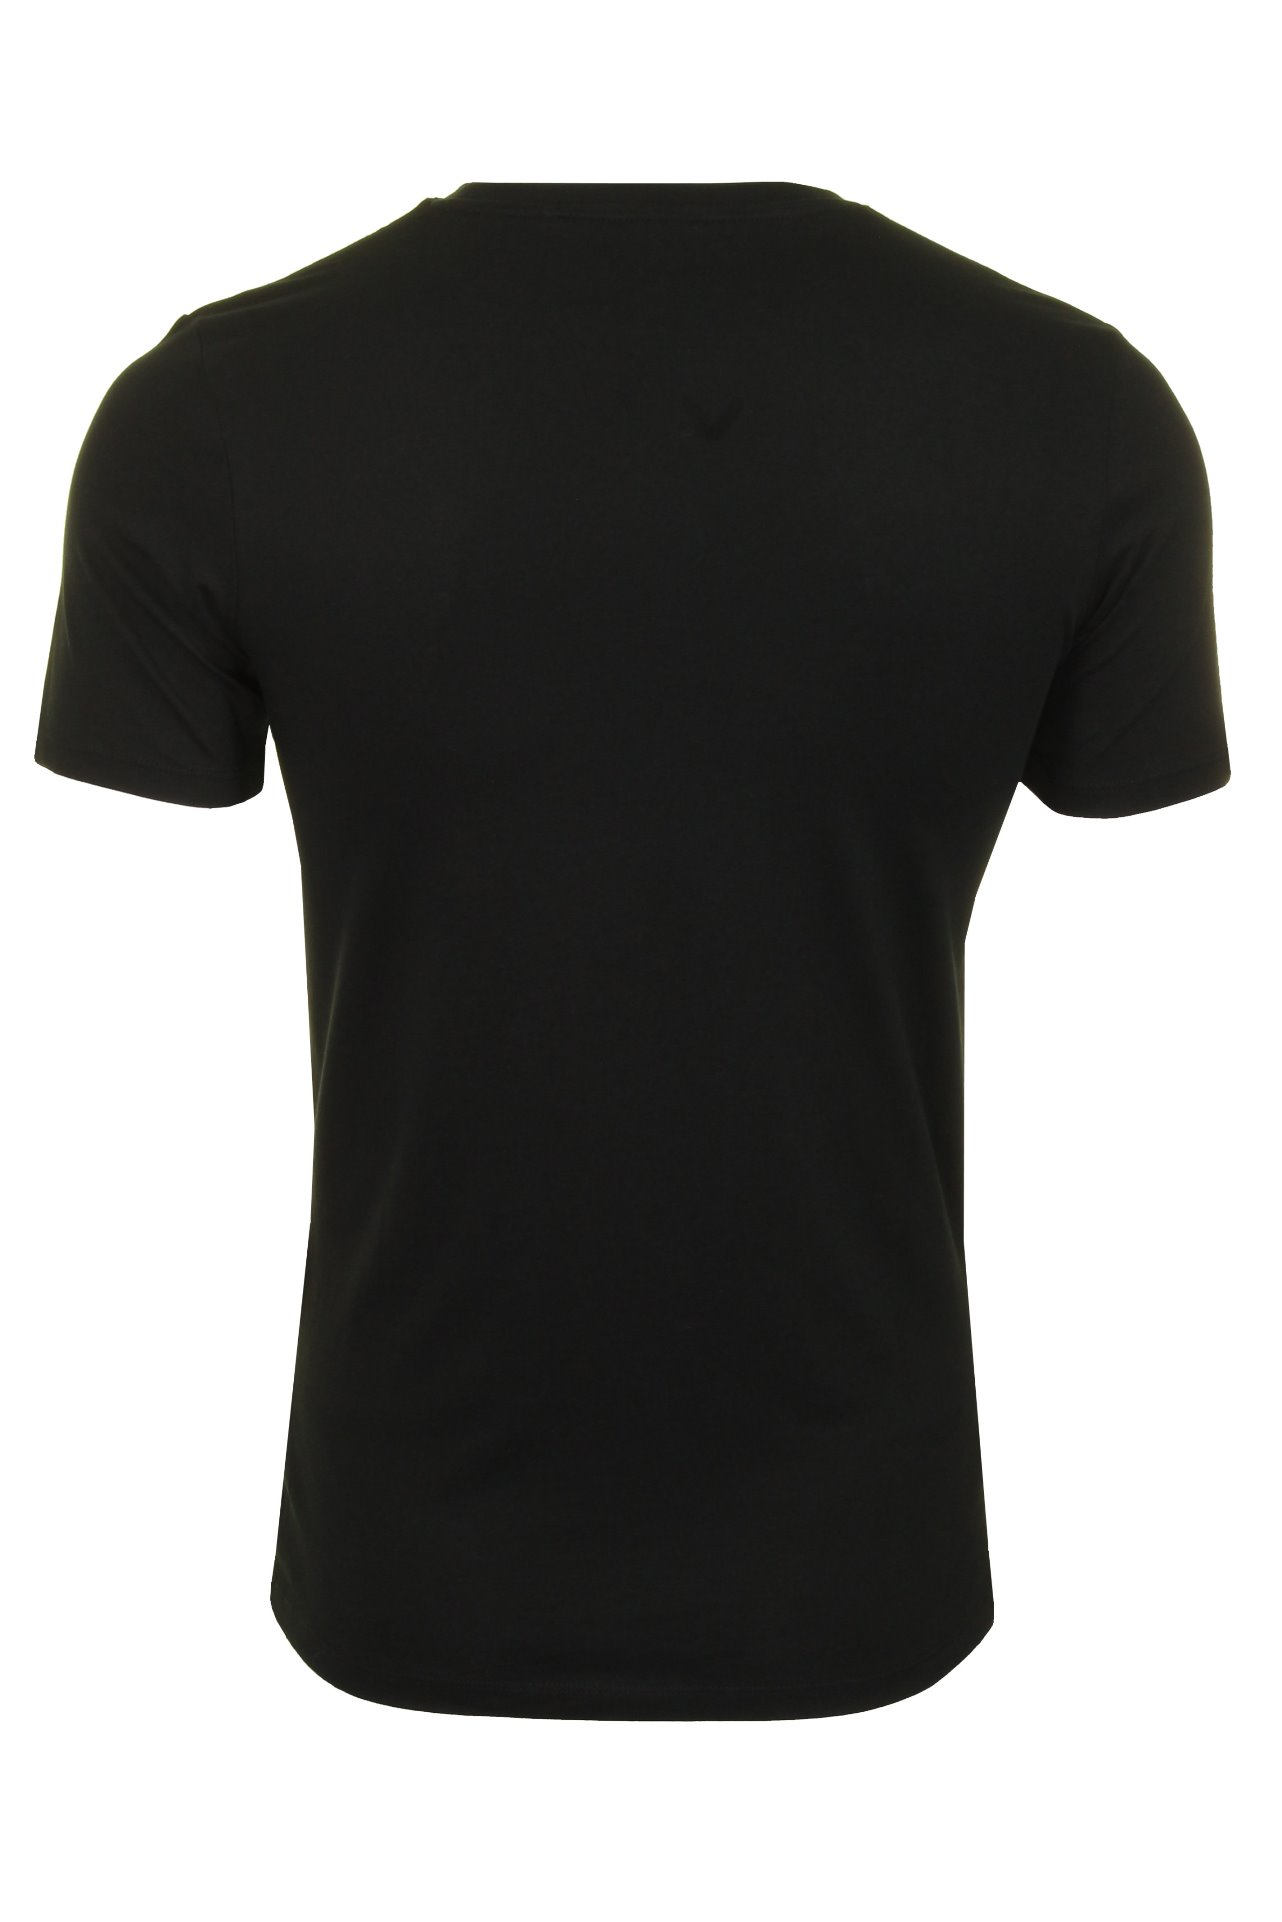 Jack-amp-Jones-Mens-039-JJE-Logo-Tee-039-T-Shirt thumbnail 4